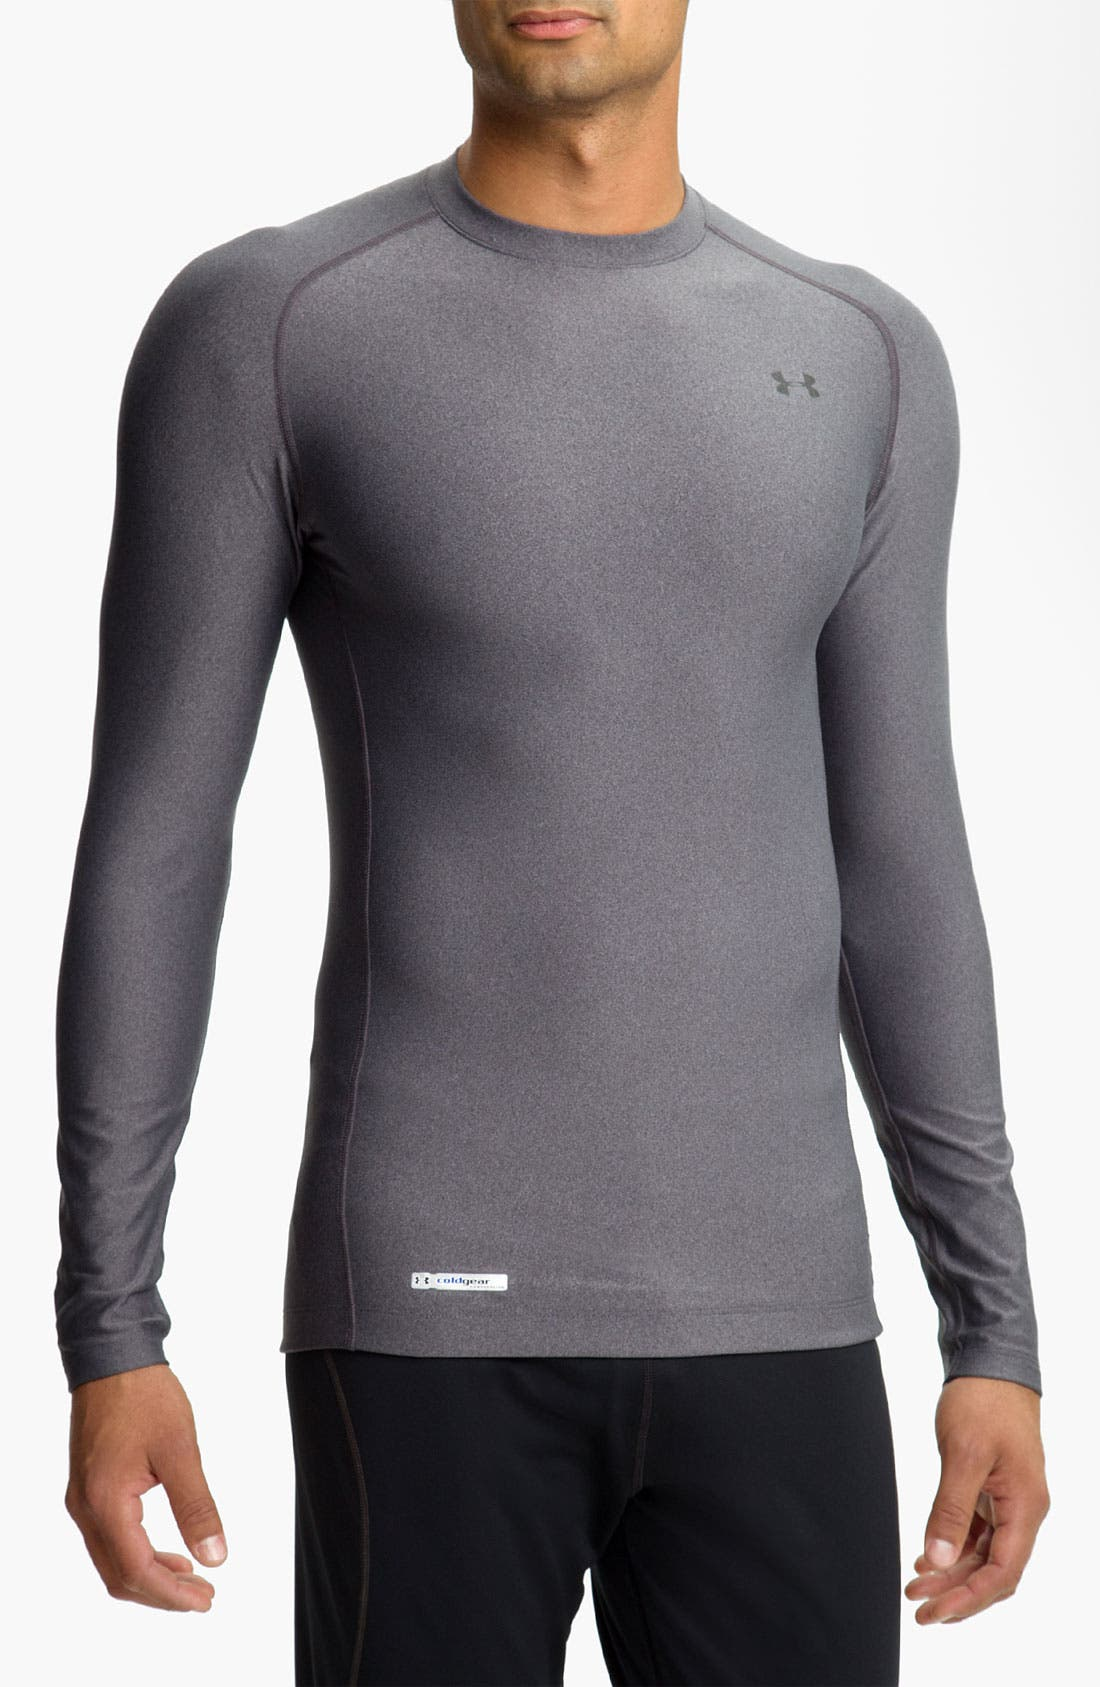 Alternate Image 1 Selected - Under Armour 'Evo' ColdGear® Compression T-Shirt (Online Exclusive)